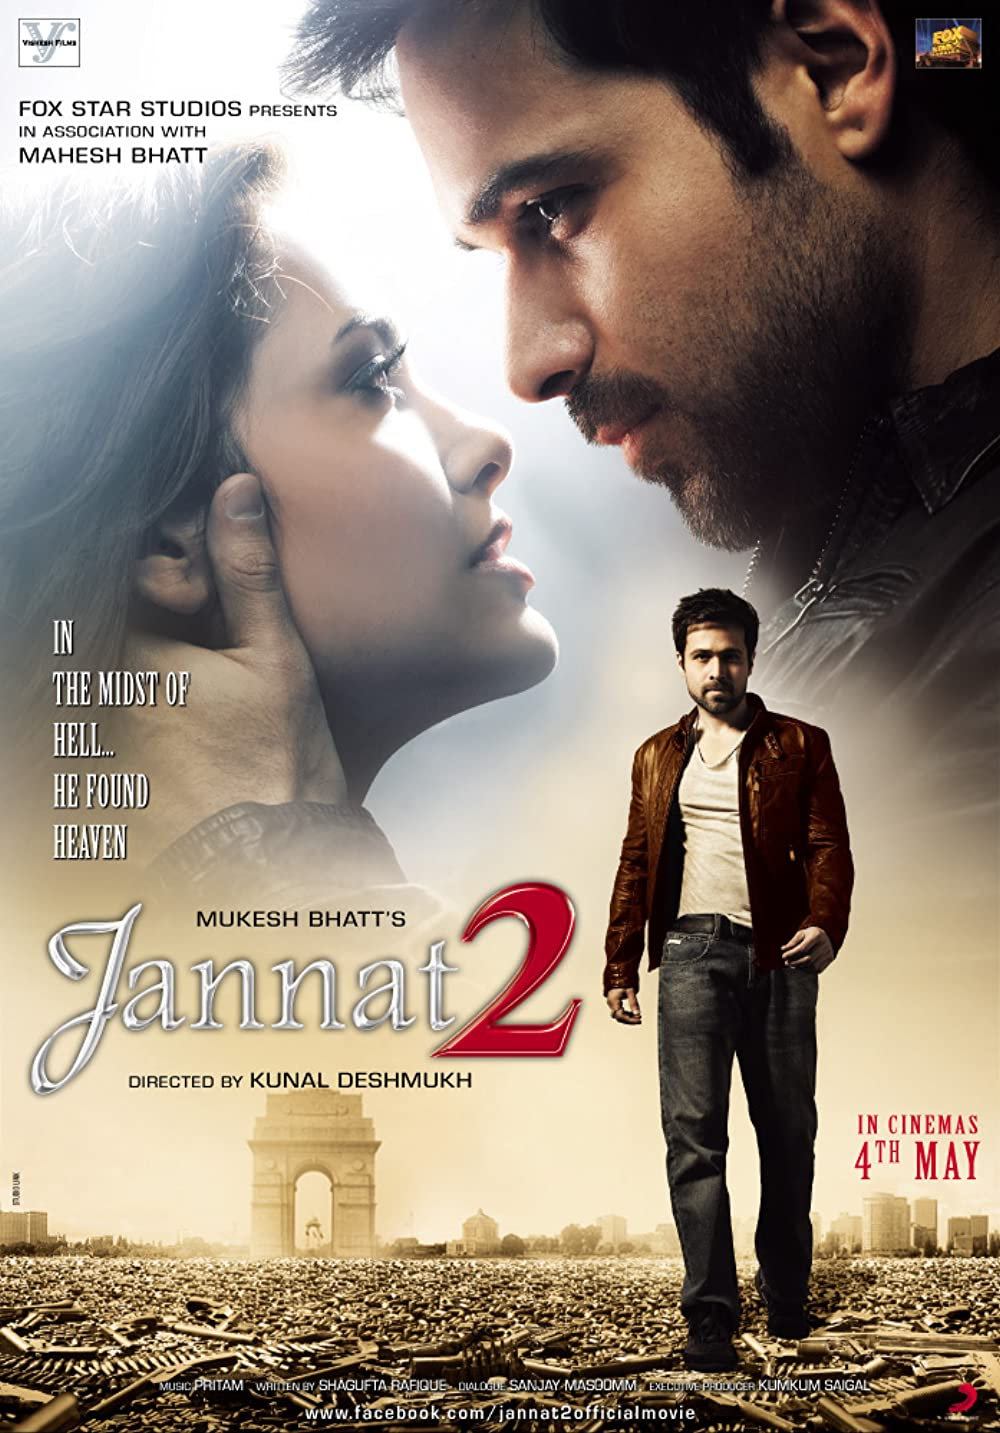 Jannat 2 2012 Hindi Movie 400MB HDRip ESubs Download